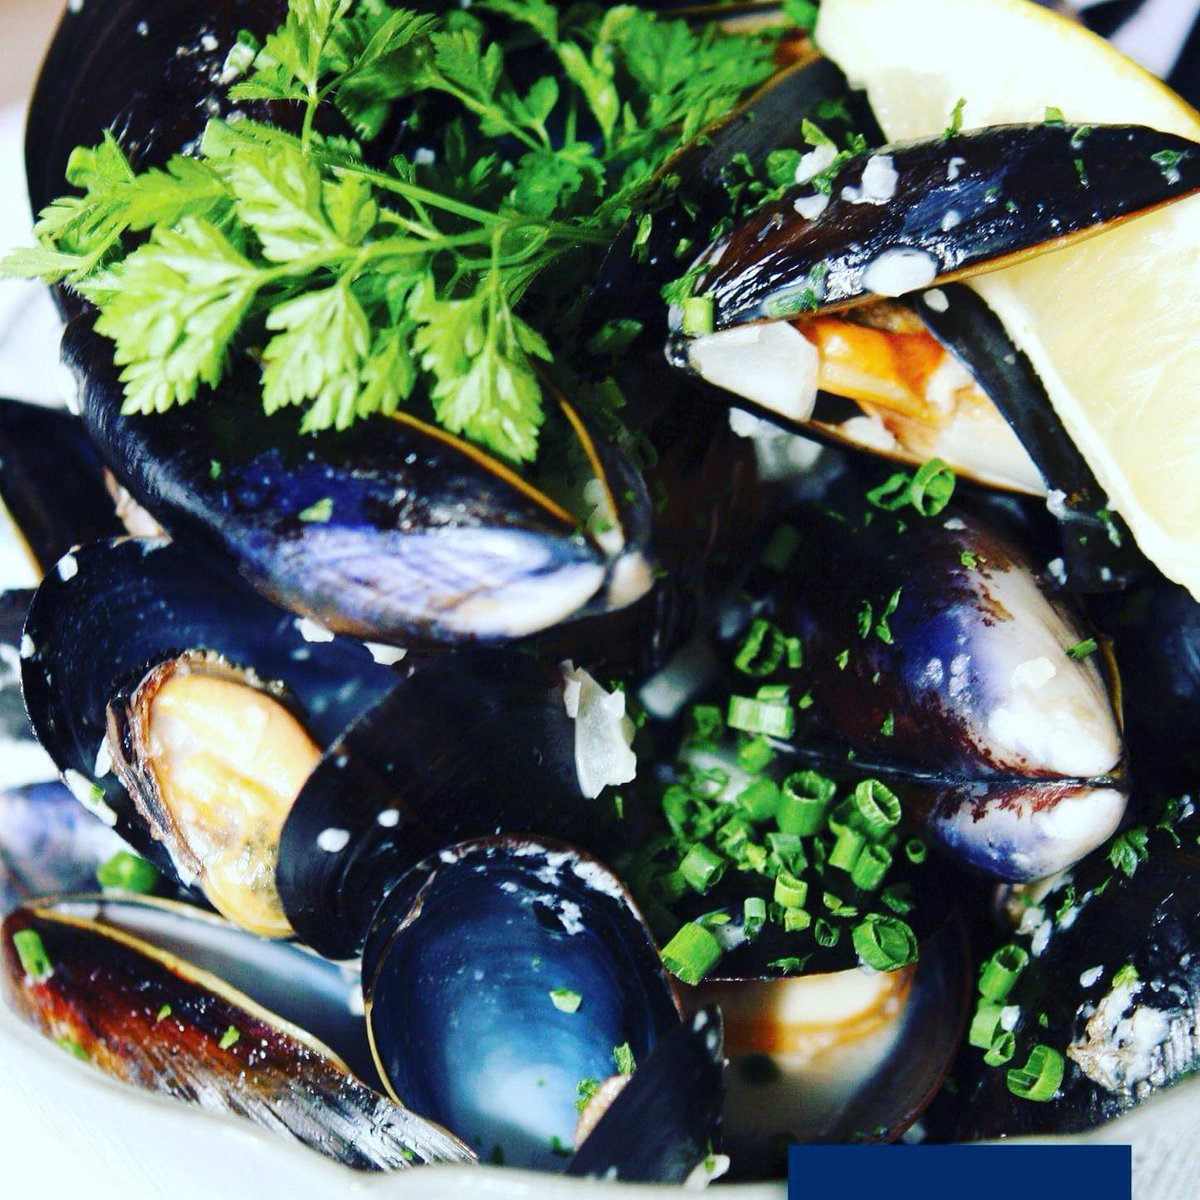 We love coming up with exciting specials, using new flavours &amp; unique combinations, but let&#39;s not forget the simple, classic dishes.... I for one absolutely love moules mariniere!  Local, delicious mussels  We can do them dairy free too. #poole #DairyFree #localseafood <br>http://pic.twitter.com/Z4LFEZ2CGD